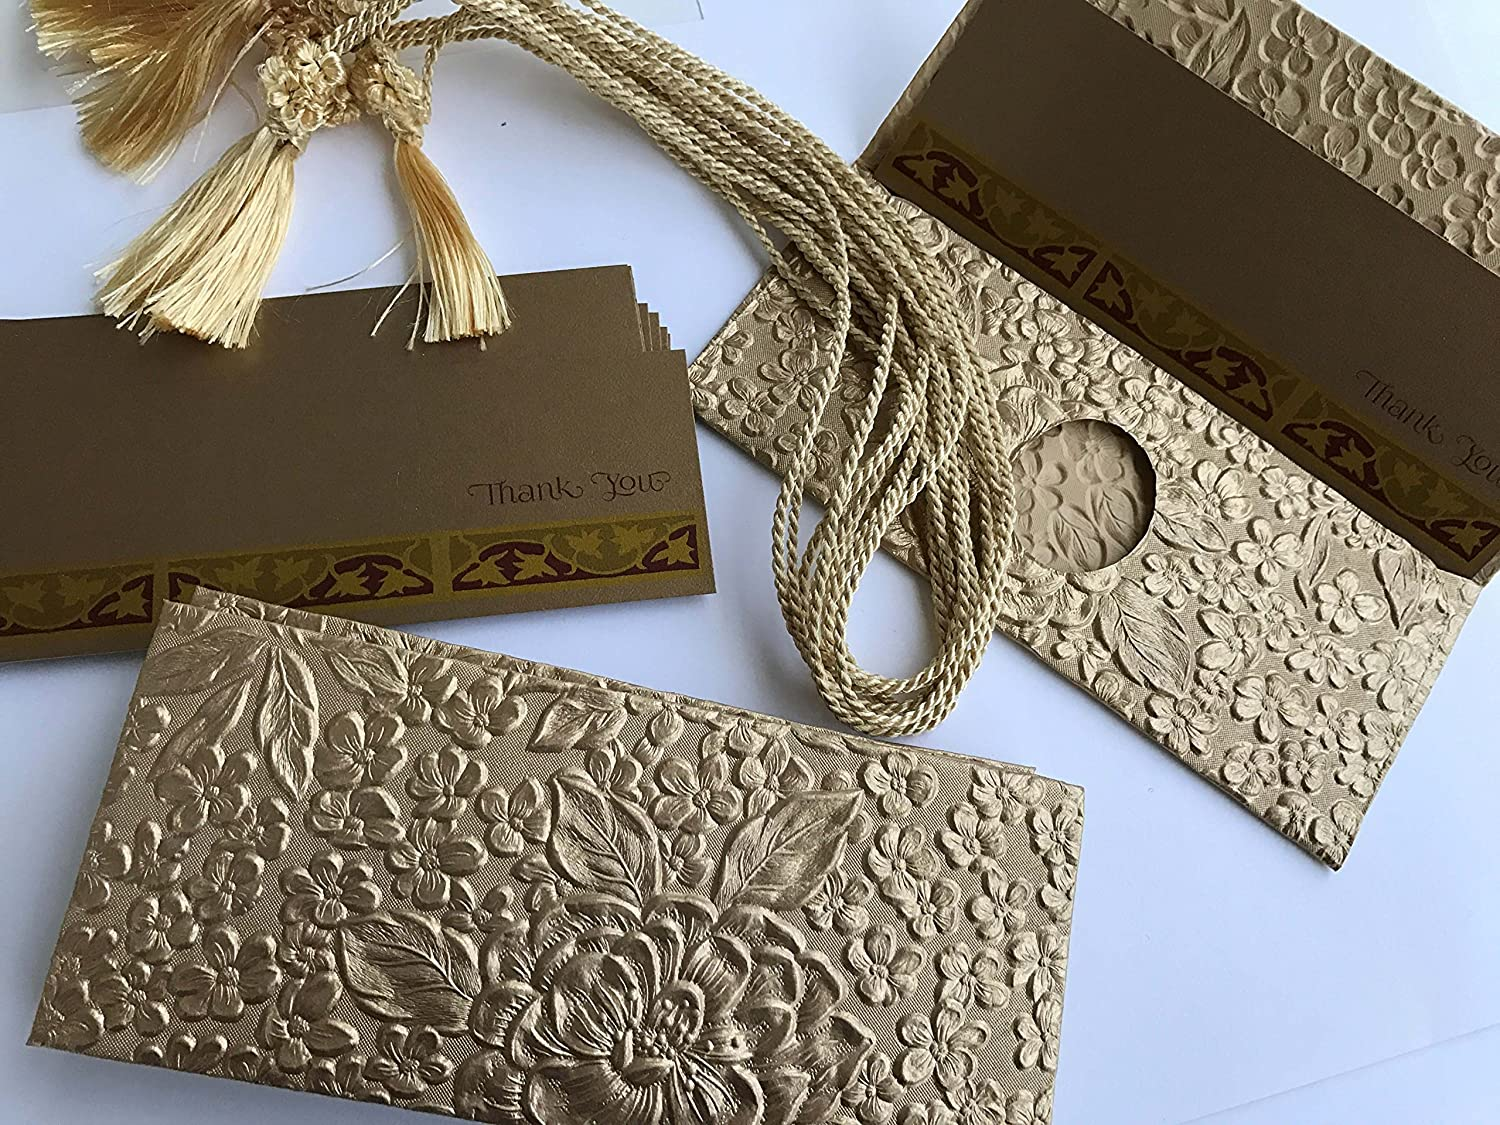 Money Envelopes (Premium) with a Insert Card and Silk Tassel for Cash Gift Wedding Gifts made from Embossed Gold Metallic Paper Floral pattern - Box of 6 ... & Amazon.com : Money Envelopes (Premium) with a Insert Card and Silk ...